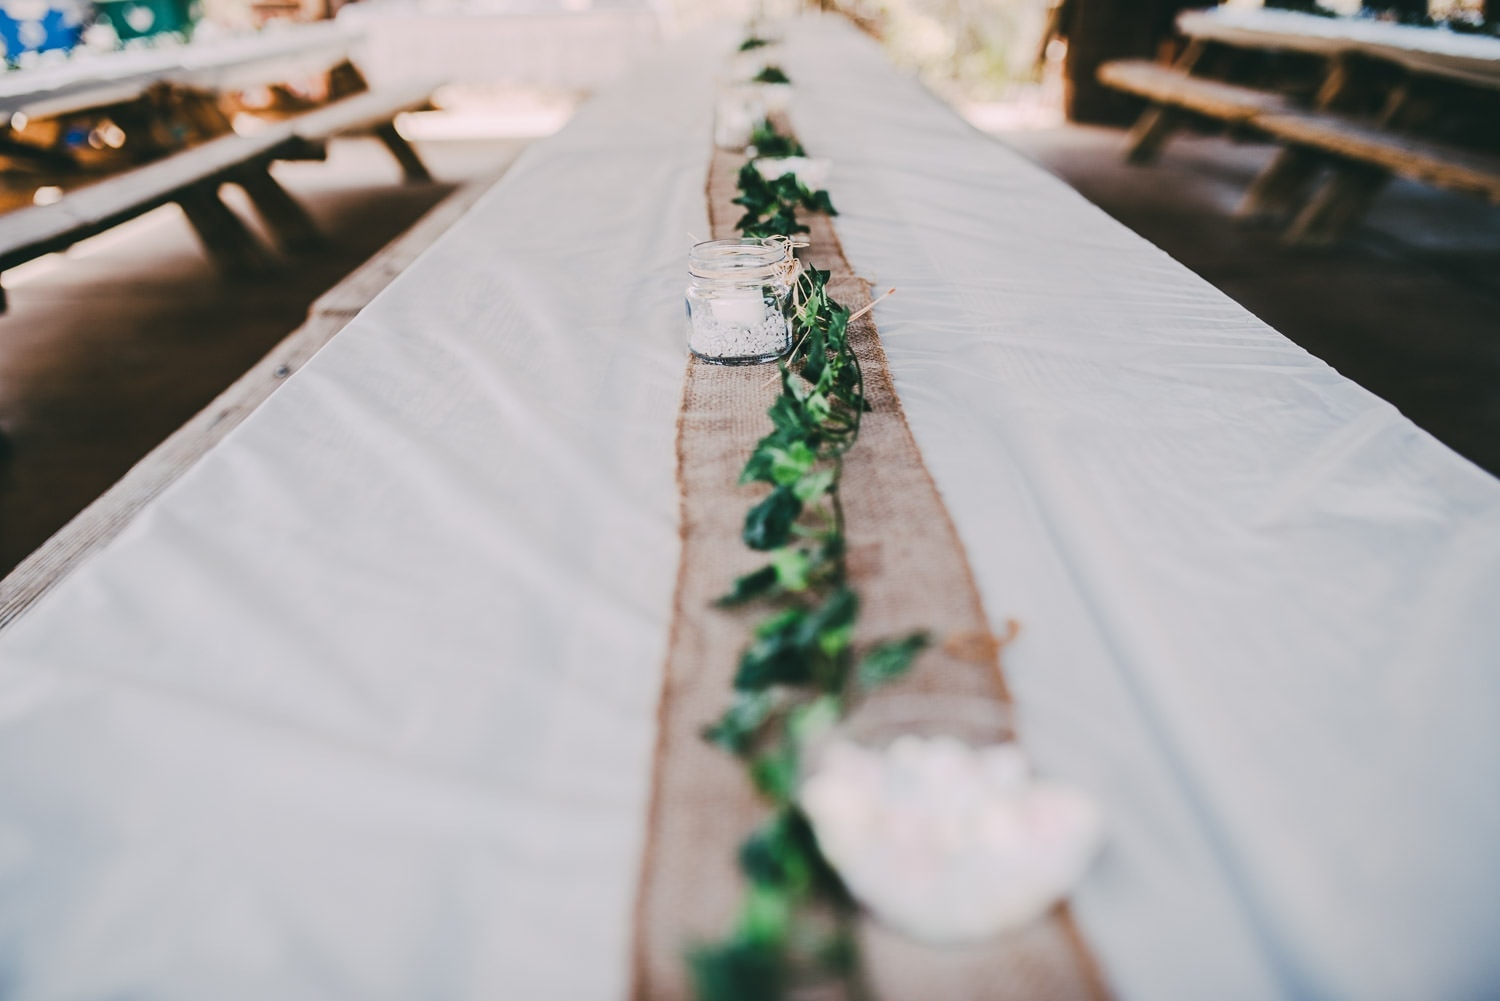 A table runner with green leaves and candles running down the center